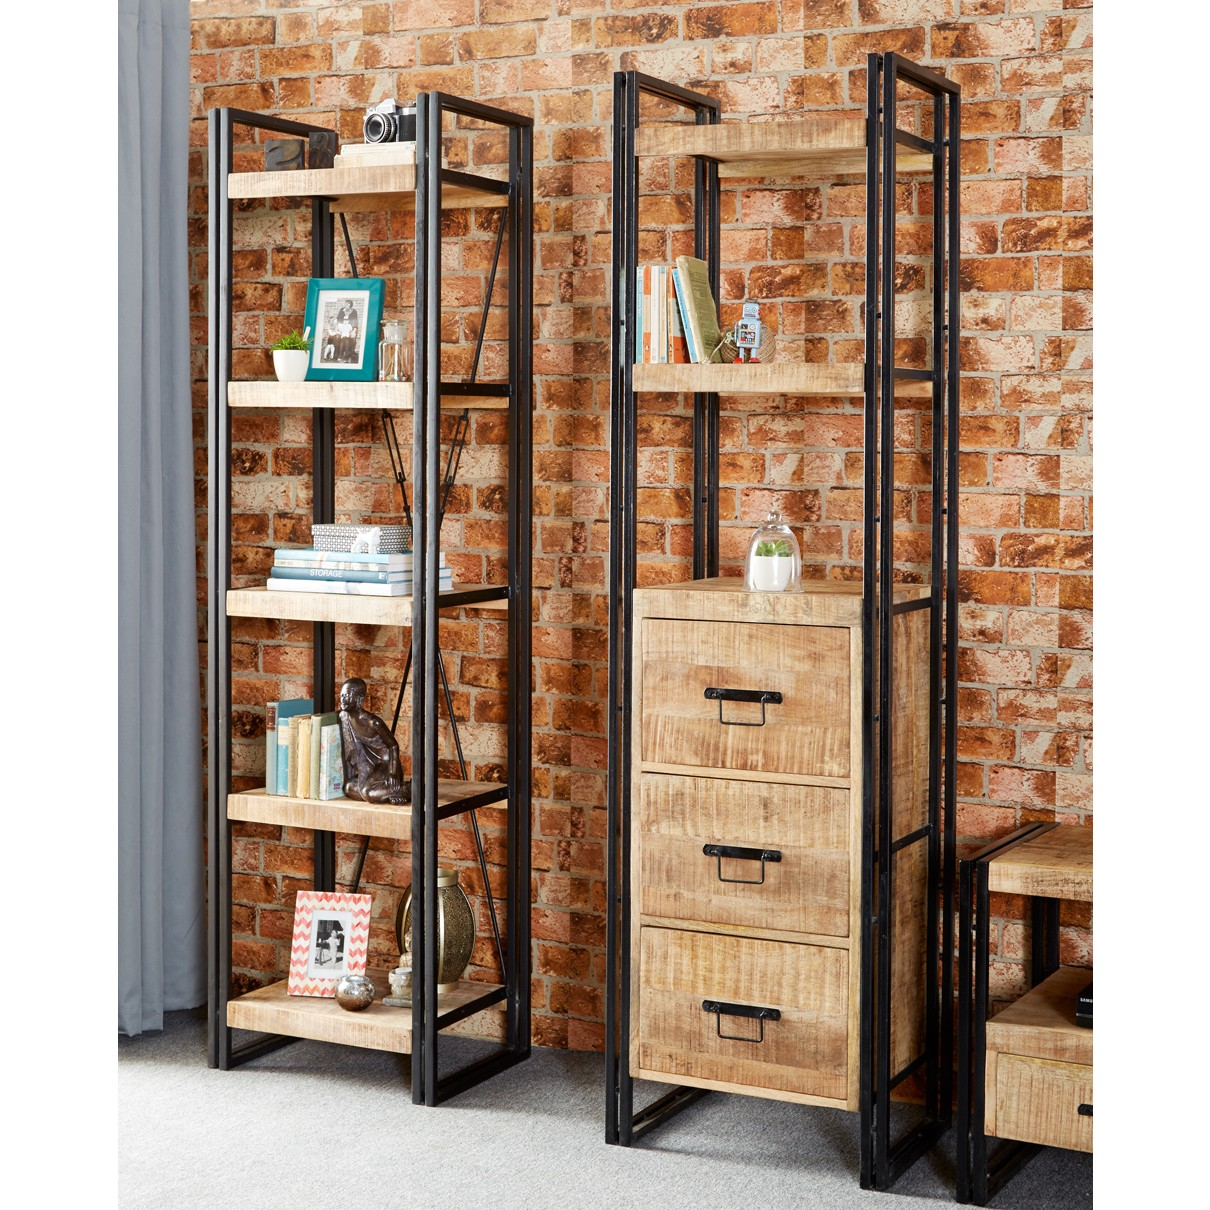 iccembed furniture usm resmode city op hei fmt bookcase qlt josie gray kn open sharpen wid